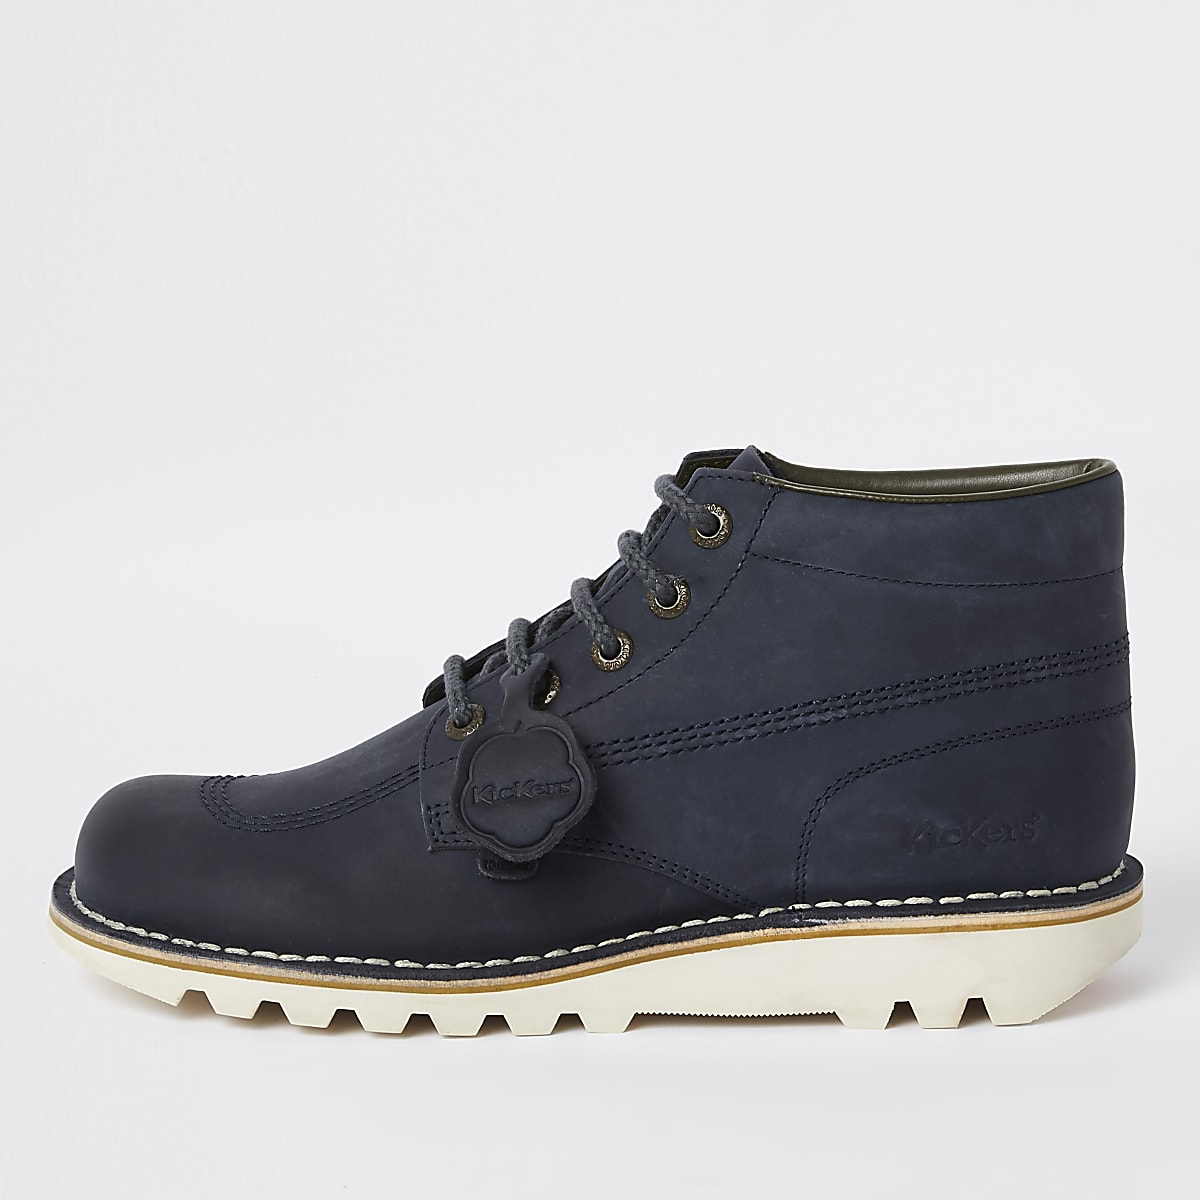 Kickers navy leather lace-up boots